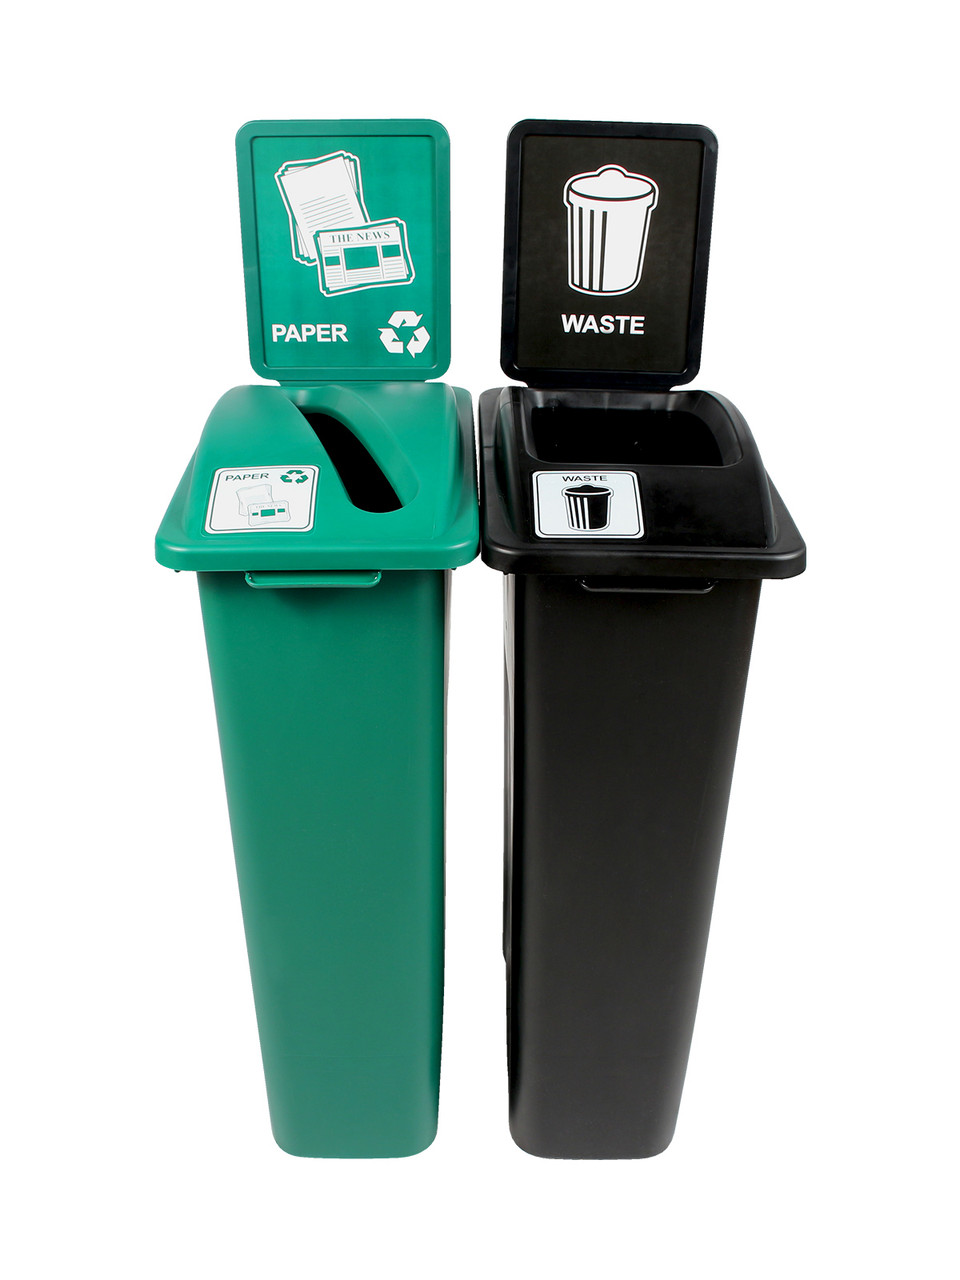 46 Gallon Simple Sort Skinny Trash Can Recycle Bin Combo 8106040-34 (Slot, Waste Openings)